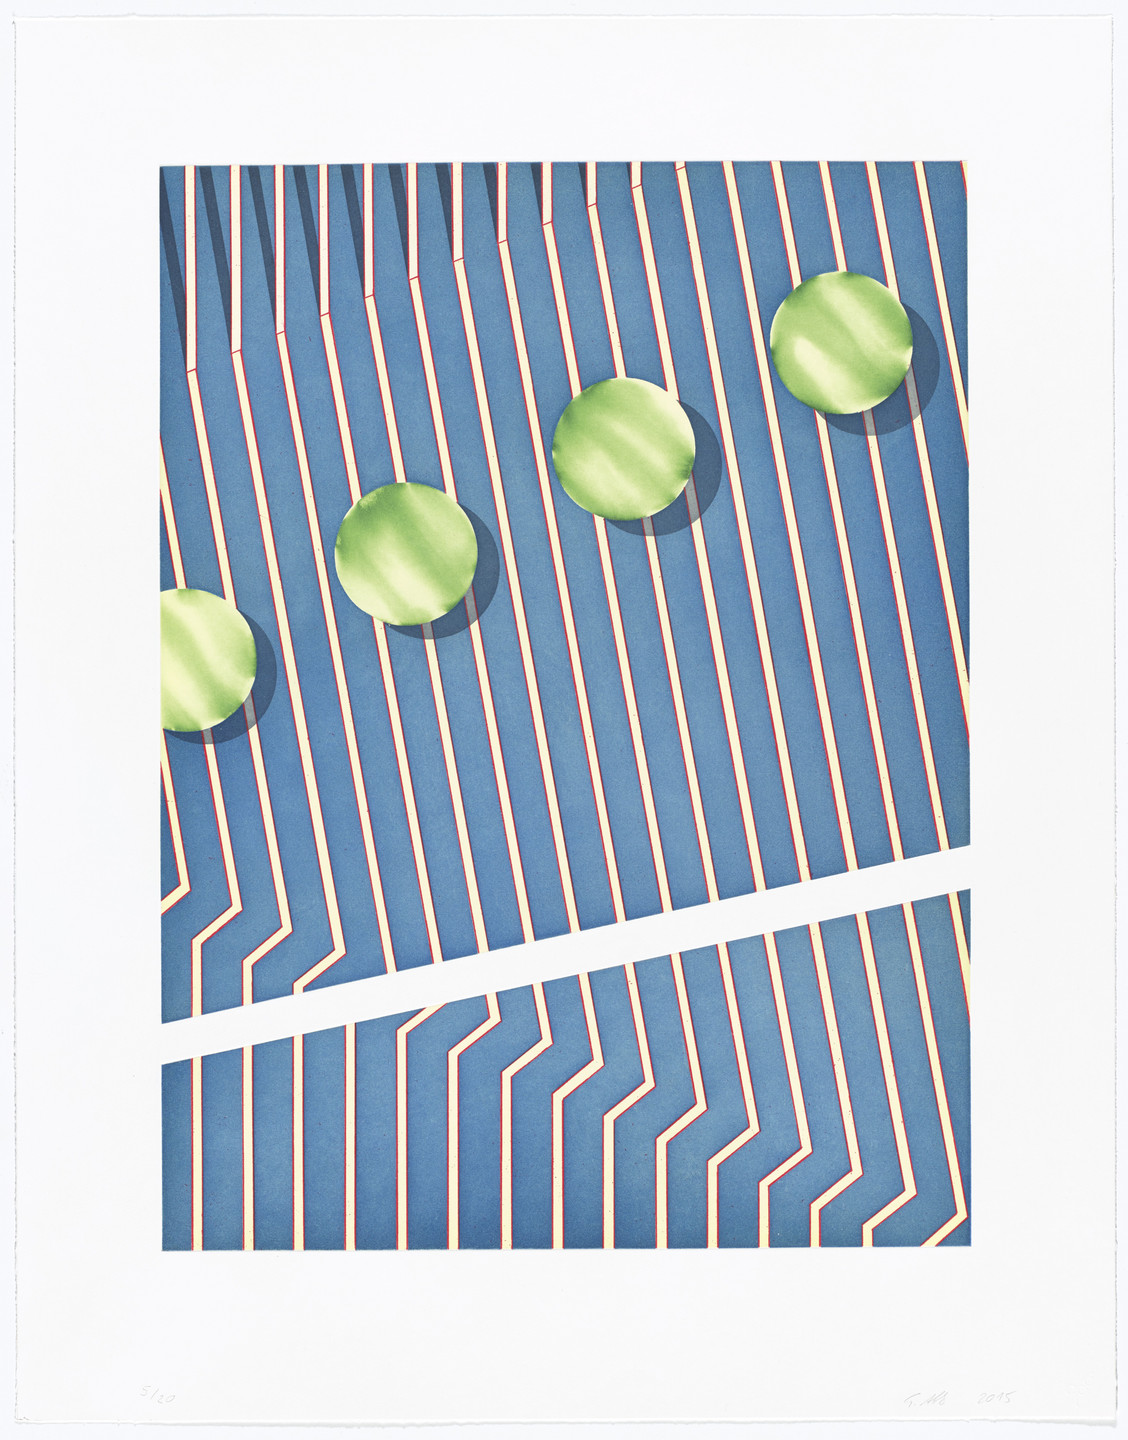 Tomma Abts. Untitled (gap). 2015